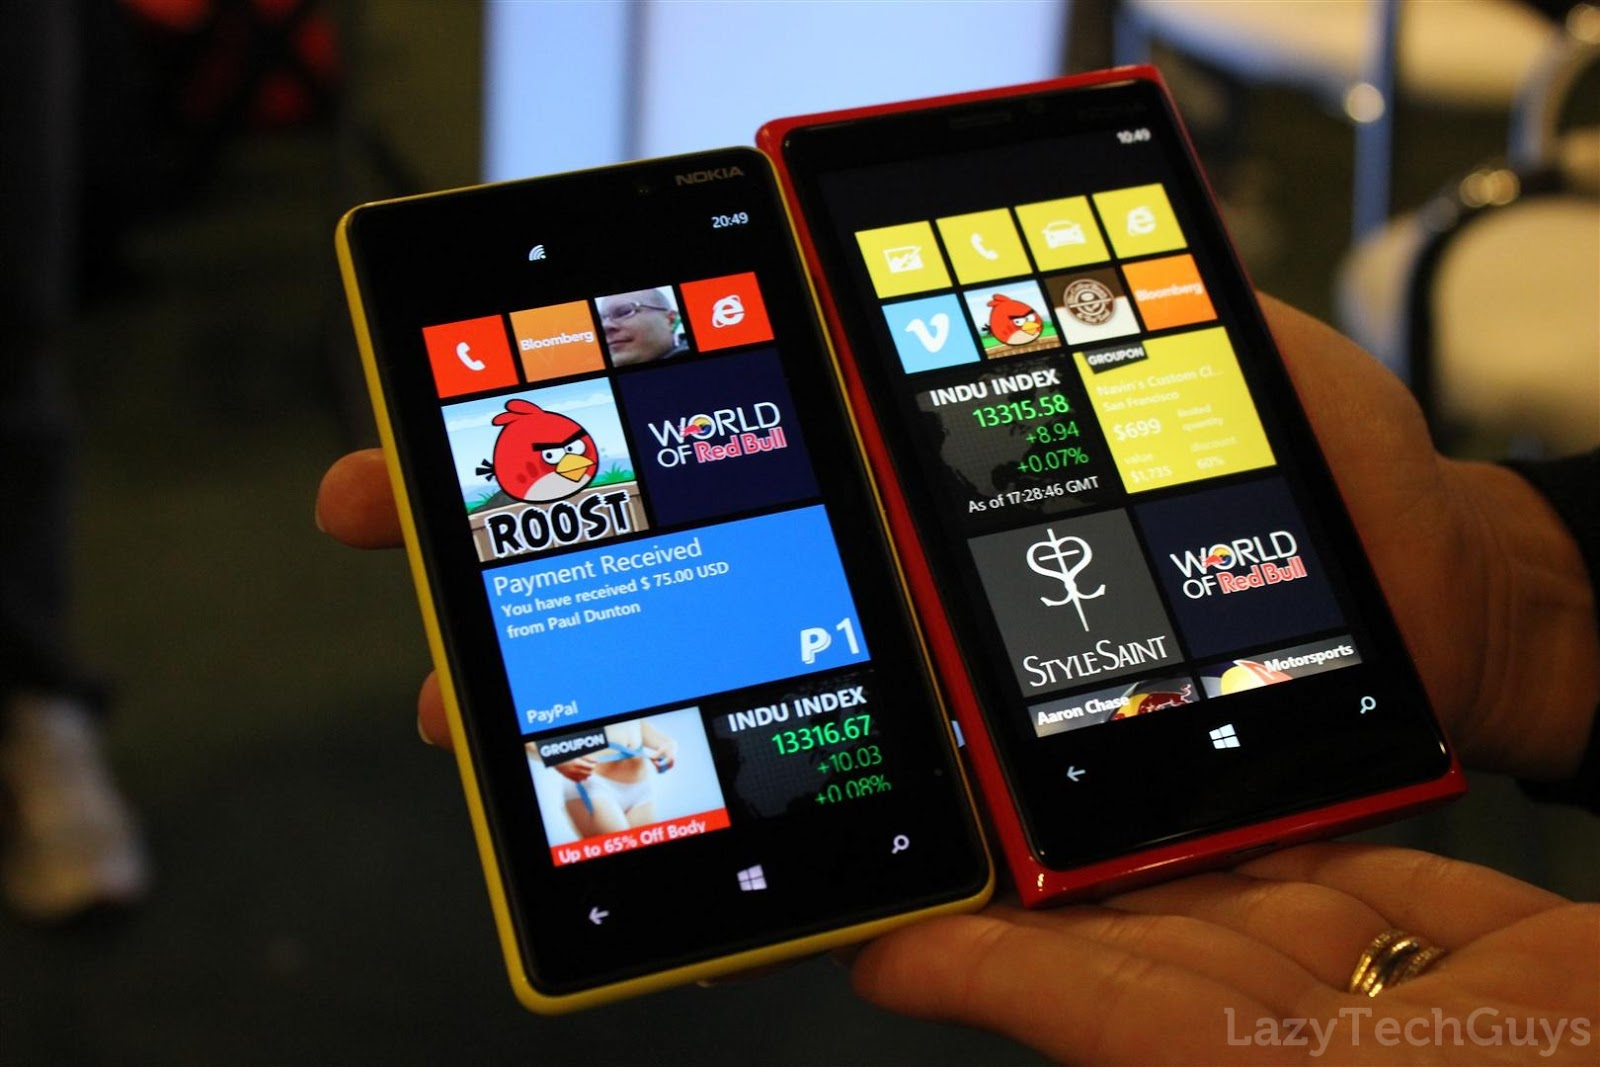 Nokia lumia 820 wallpapers hd amazing wallpapers for Amazing wallpapers for nokia